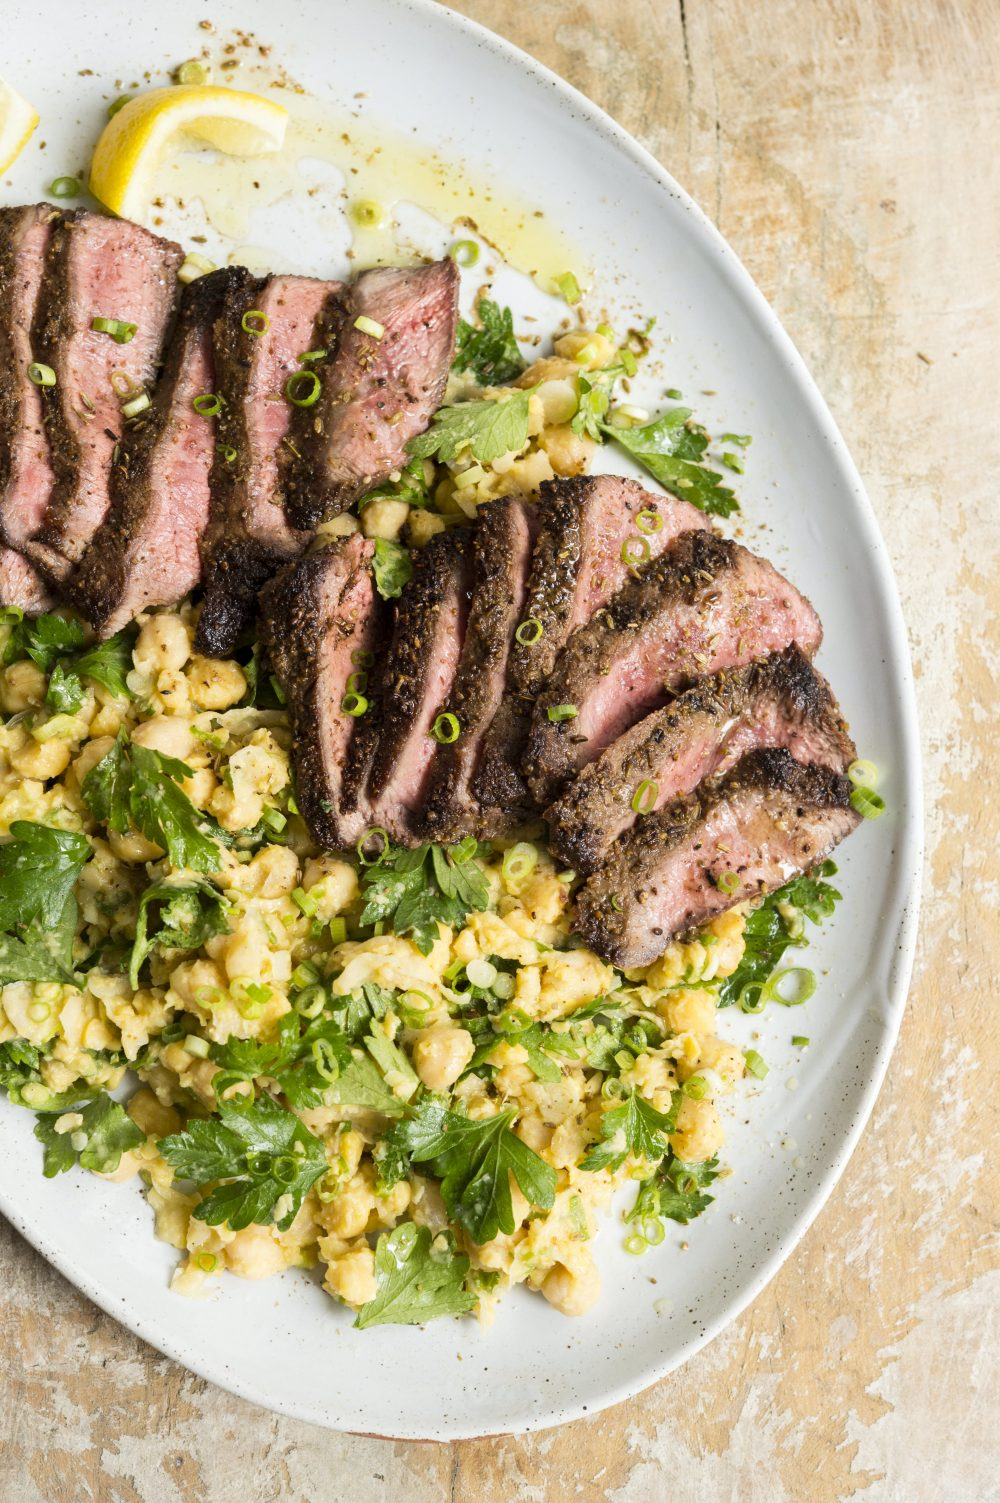 Spice-Crusted Steak with Mashed Chickpeas